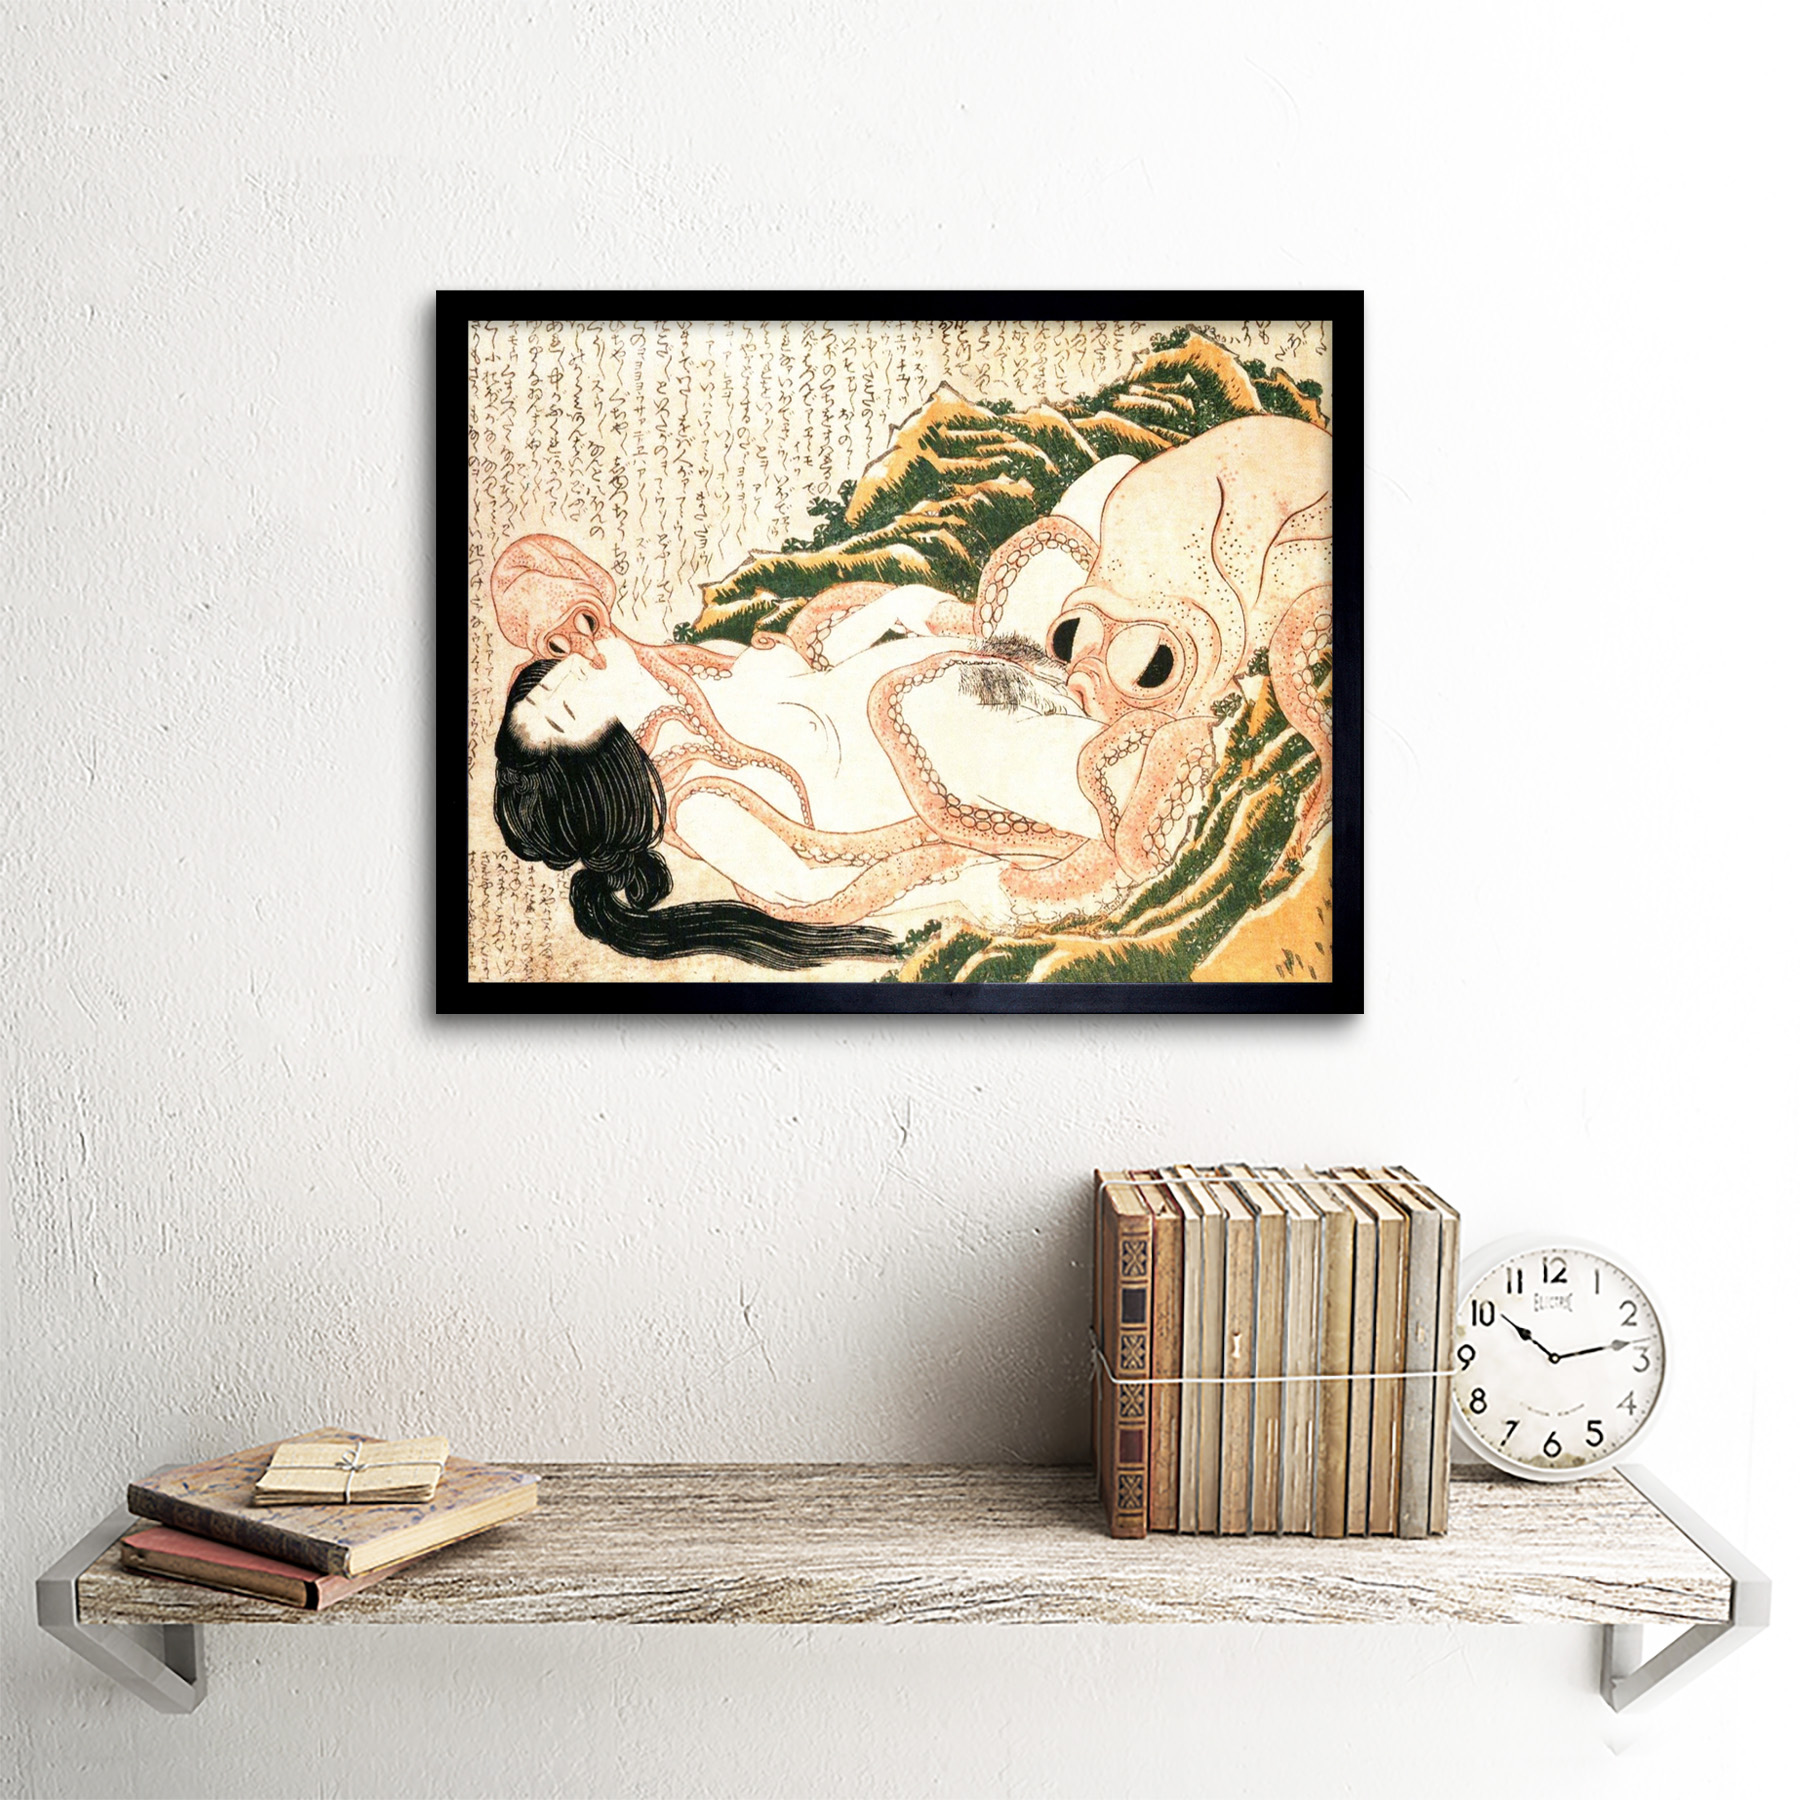 thumbnail 3 - Hokusai-Octopus-Fishermans-Wife-Dreams-Adult-Japanese-Art-Print-Framed-12x16